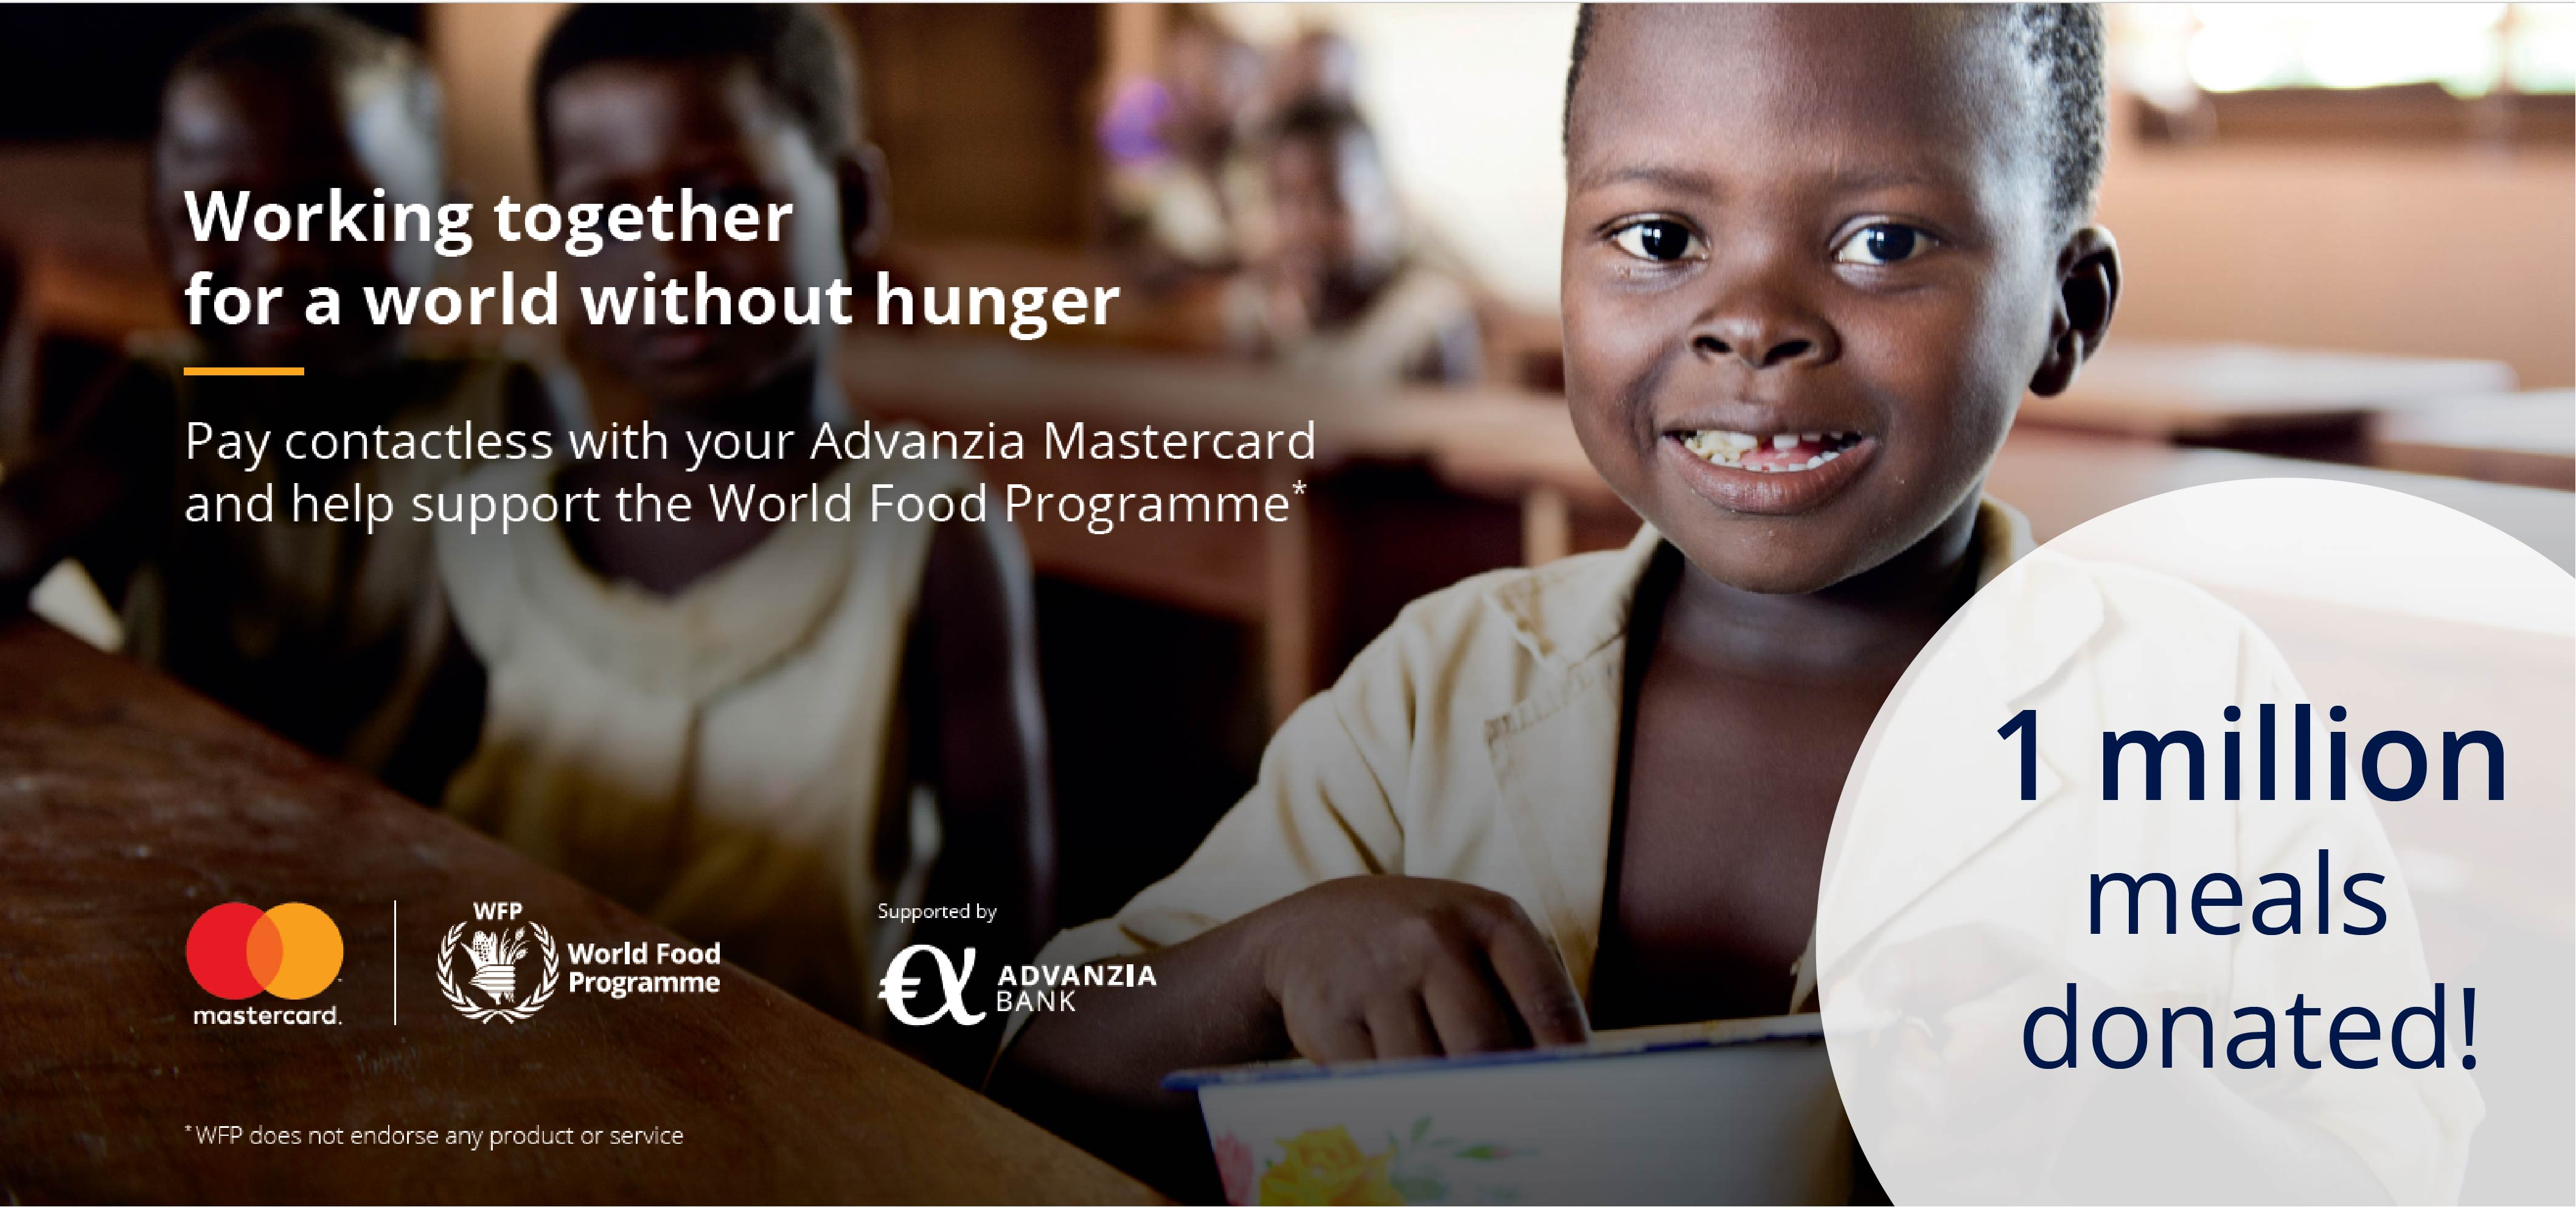 Advanzia and Mastercard donate 1 million meals to children in need